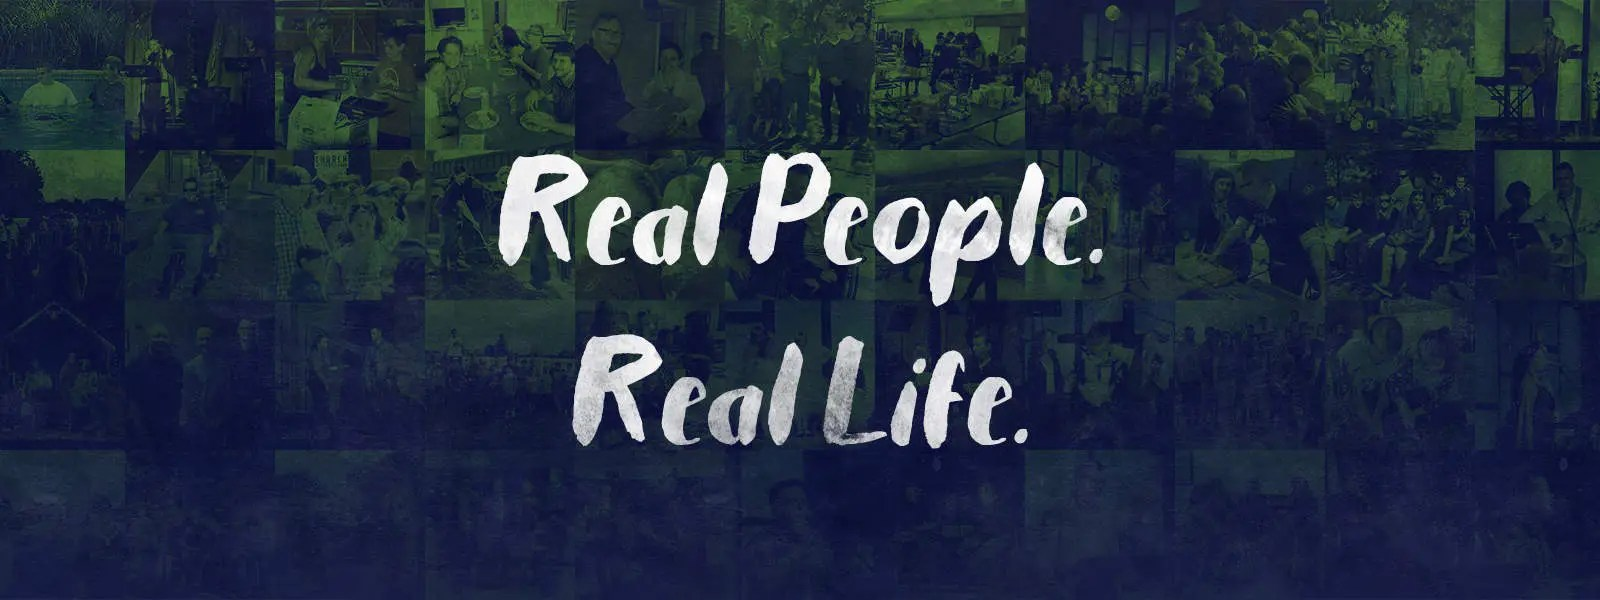 Real People. Real Life.